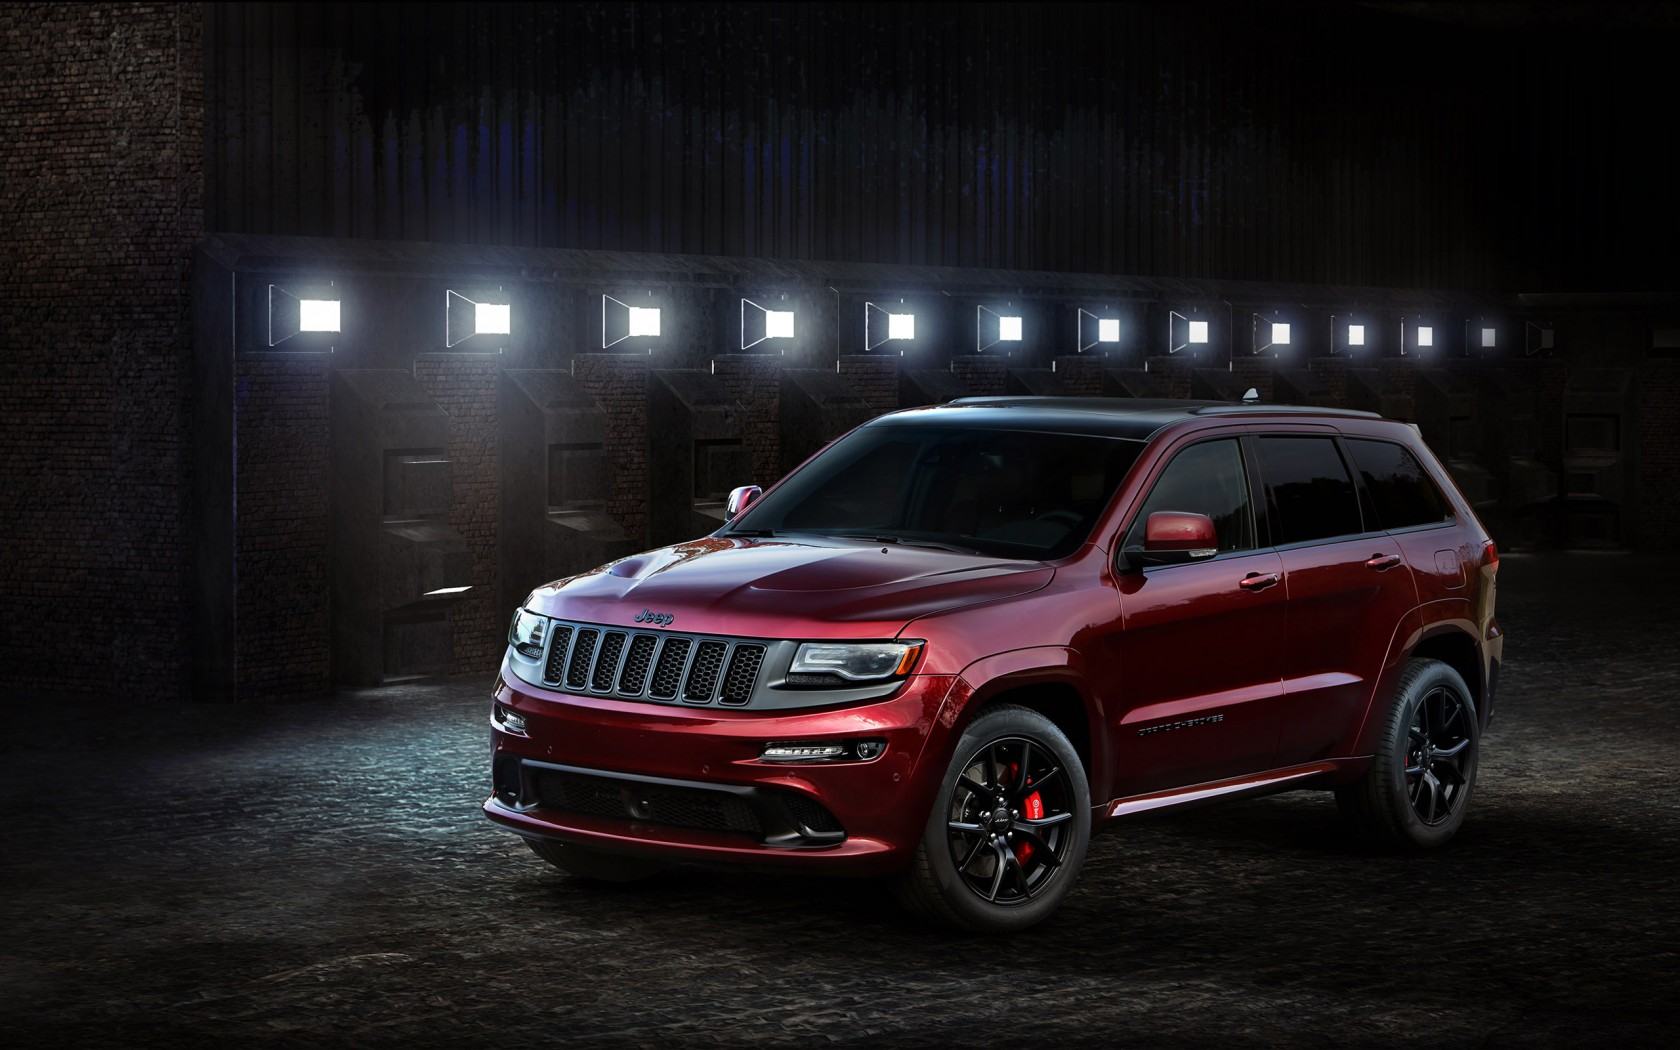 Jeep Car Images Hd: 2016 Jeep Grand Cherokee SRT Wallpaper